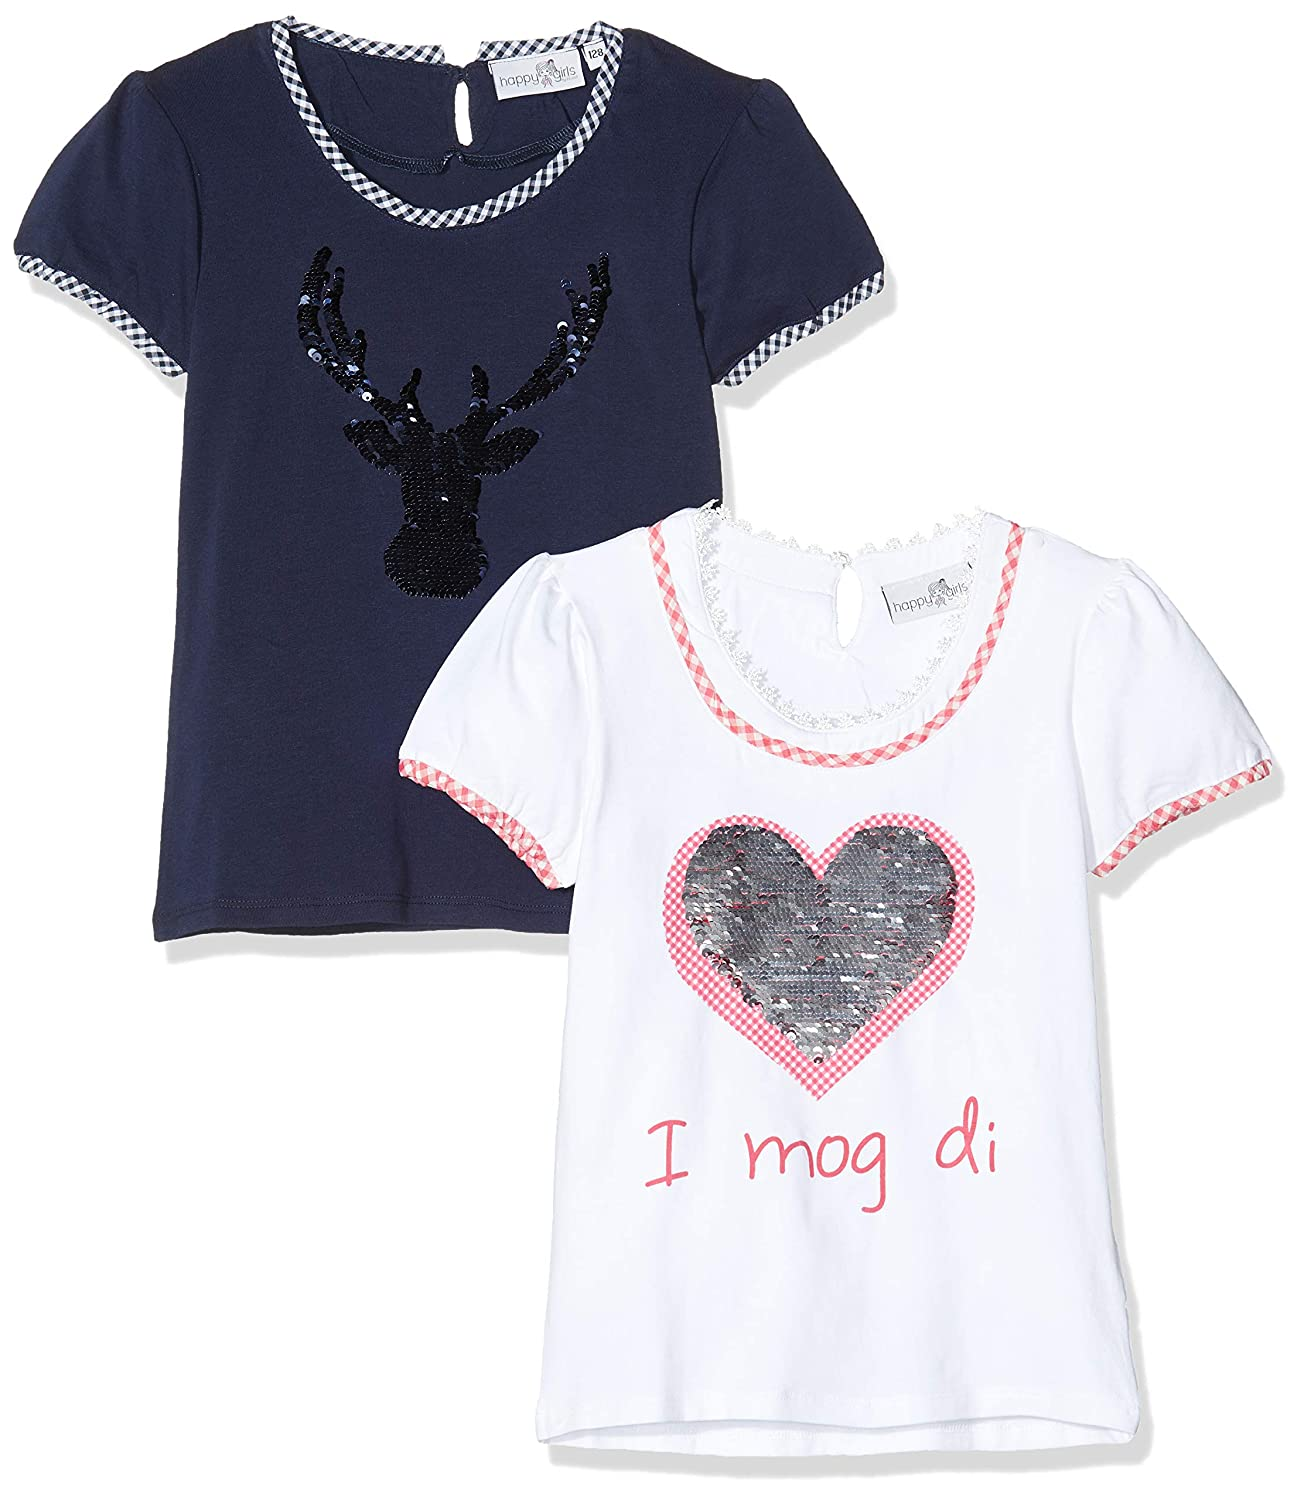 Happy Girls T-Shirt Girocollo Bambina Pacco da 2